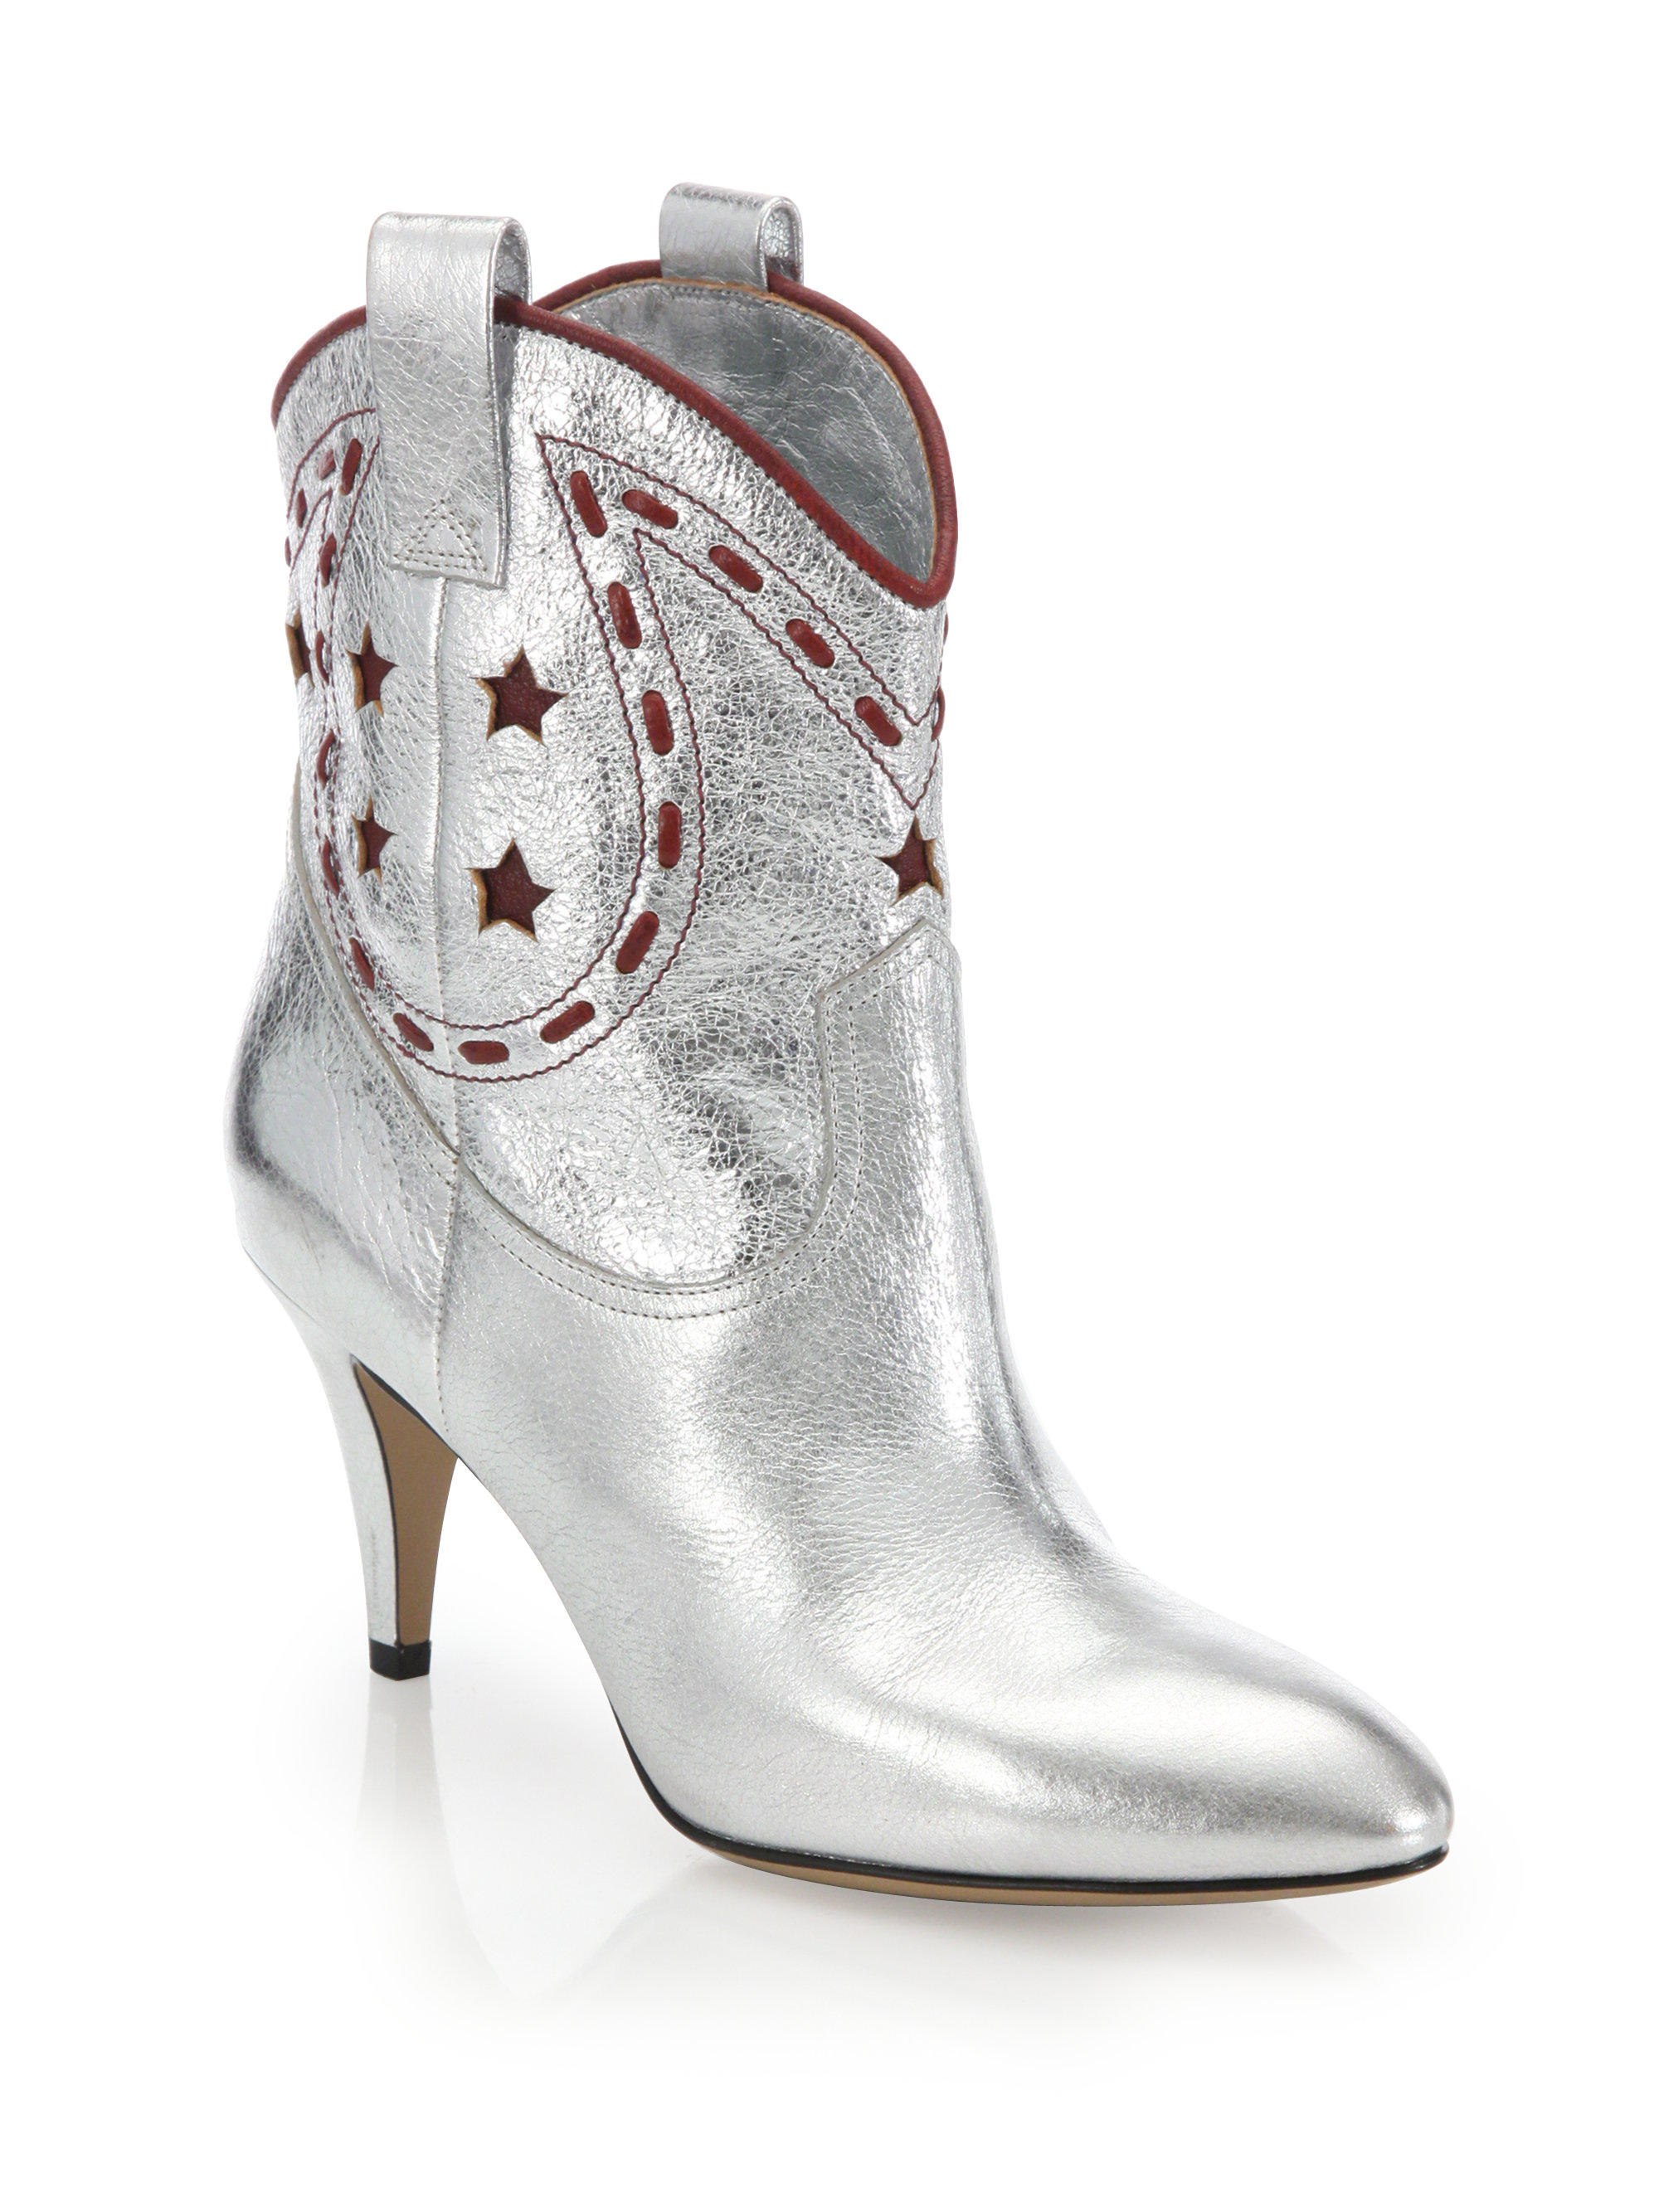 Marc jacobs Georgia Metallic Leather Cowboy Boots in Metallic | Lyst